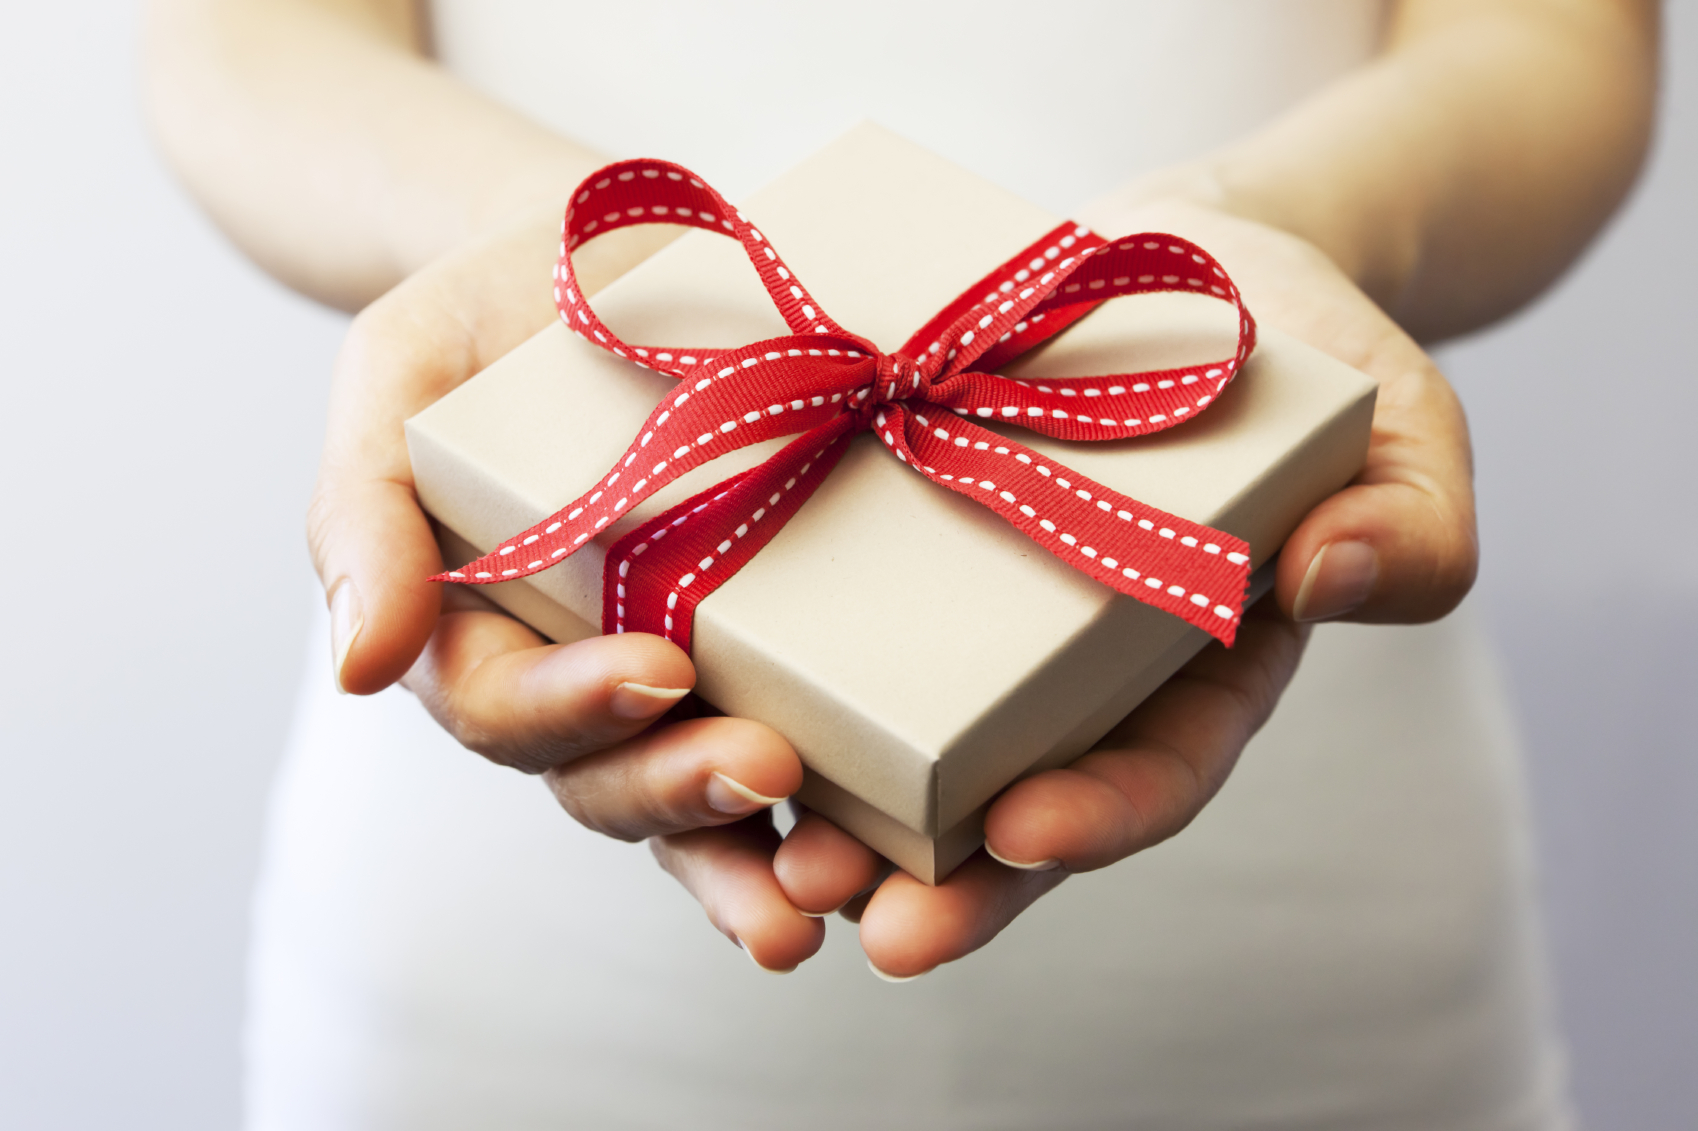 a_gift_for_you_red_ribbon_present_hands_hd-wallpaper-1642917